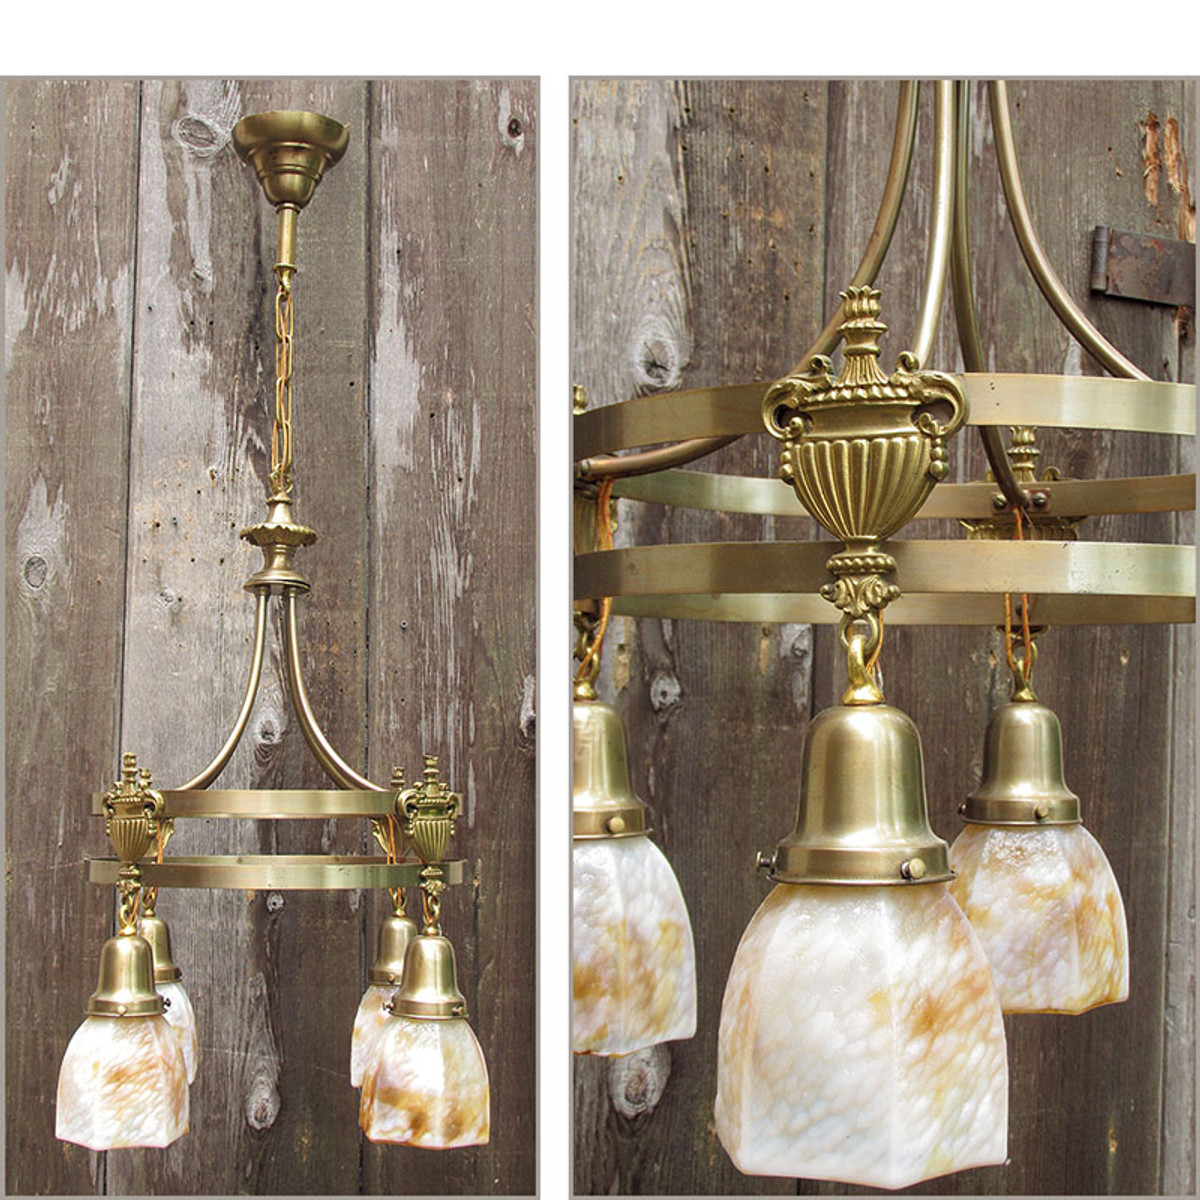 L10806 - Antique Neoclassical Four Light Ceiling Fixture with Art Glass Shades